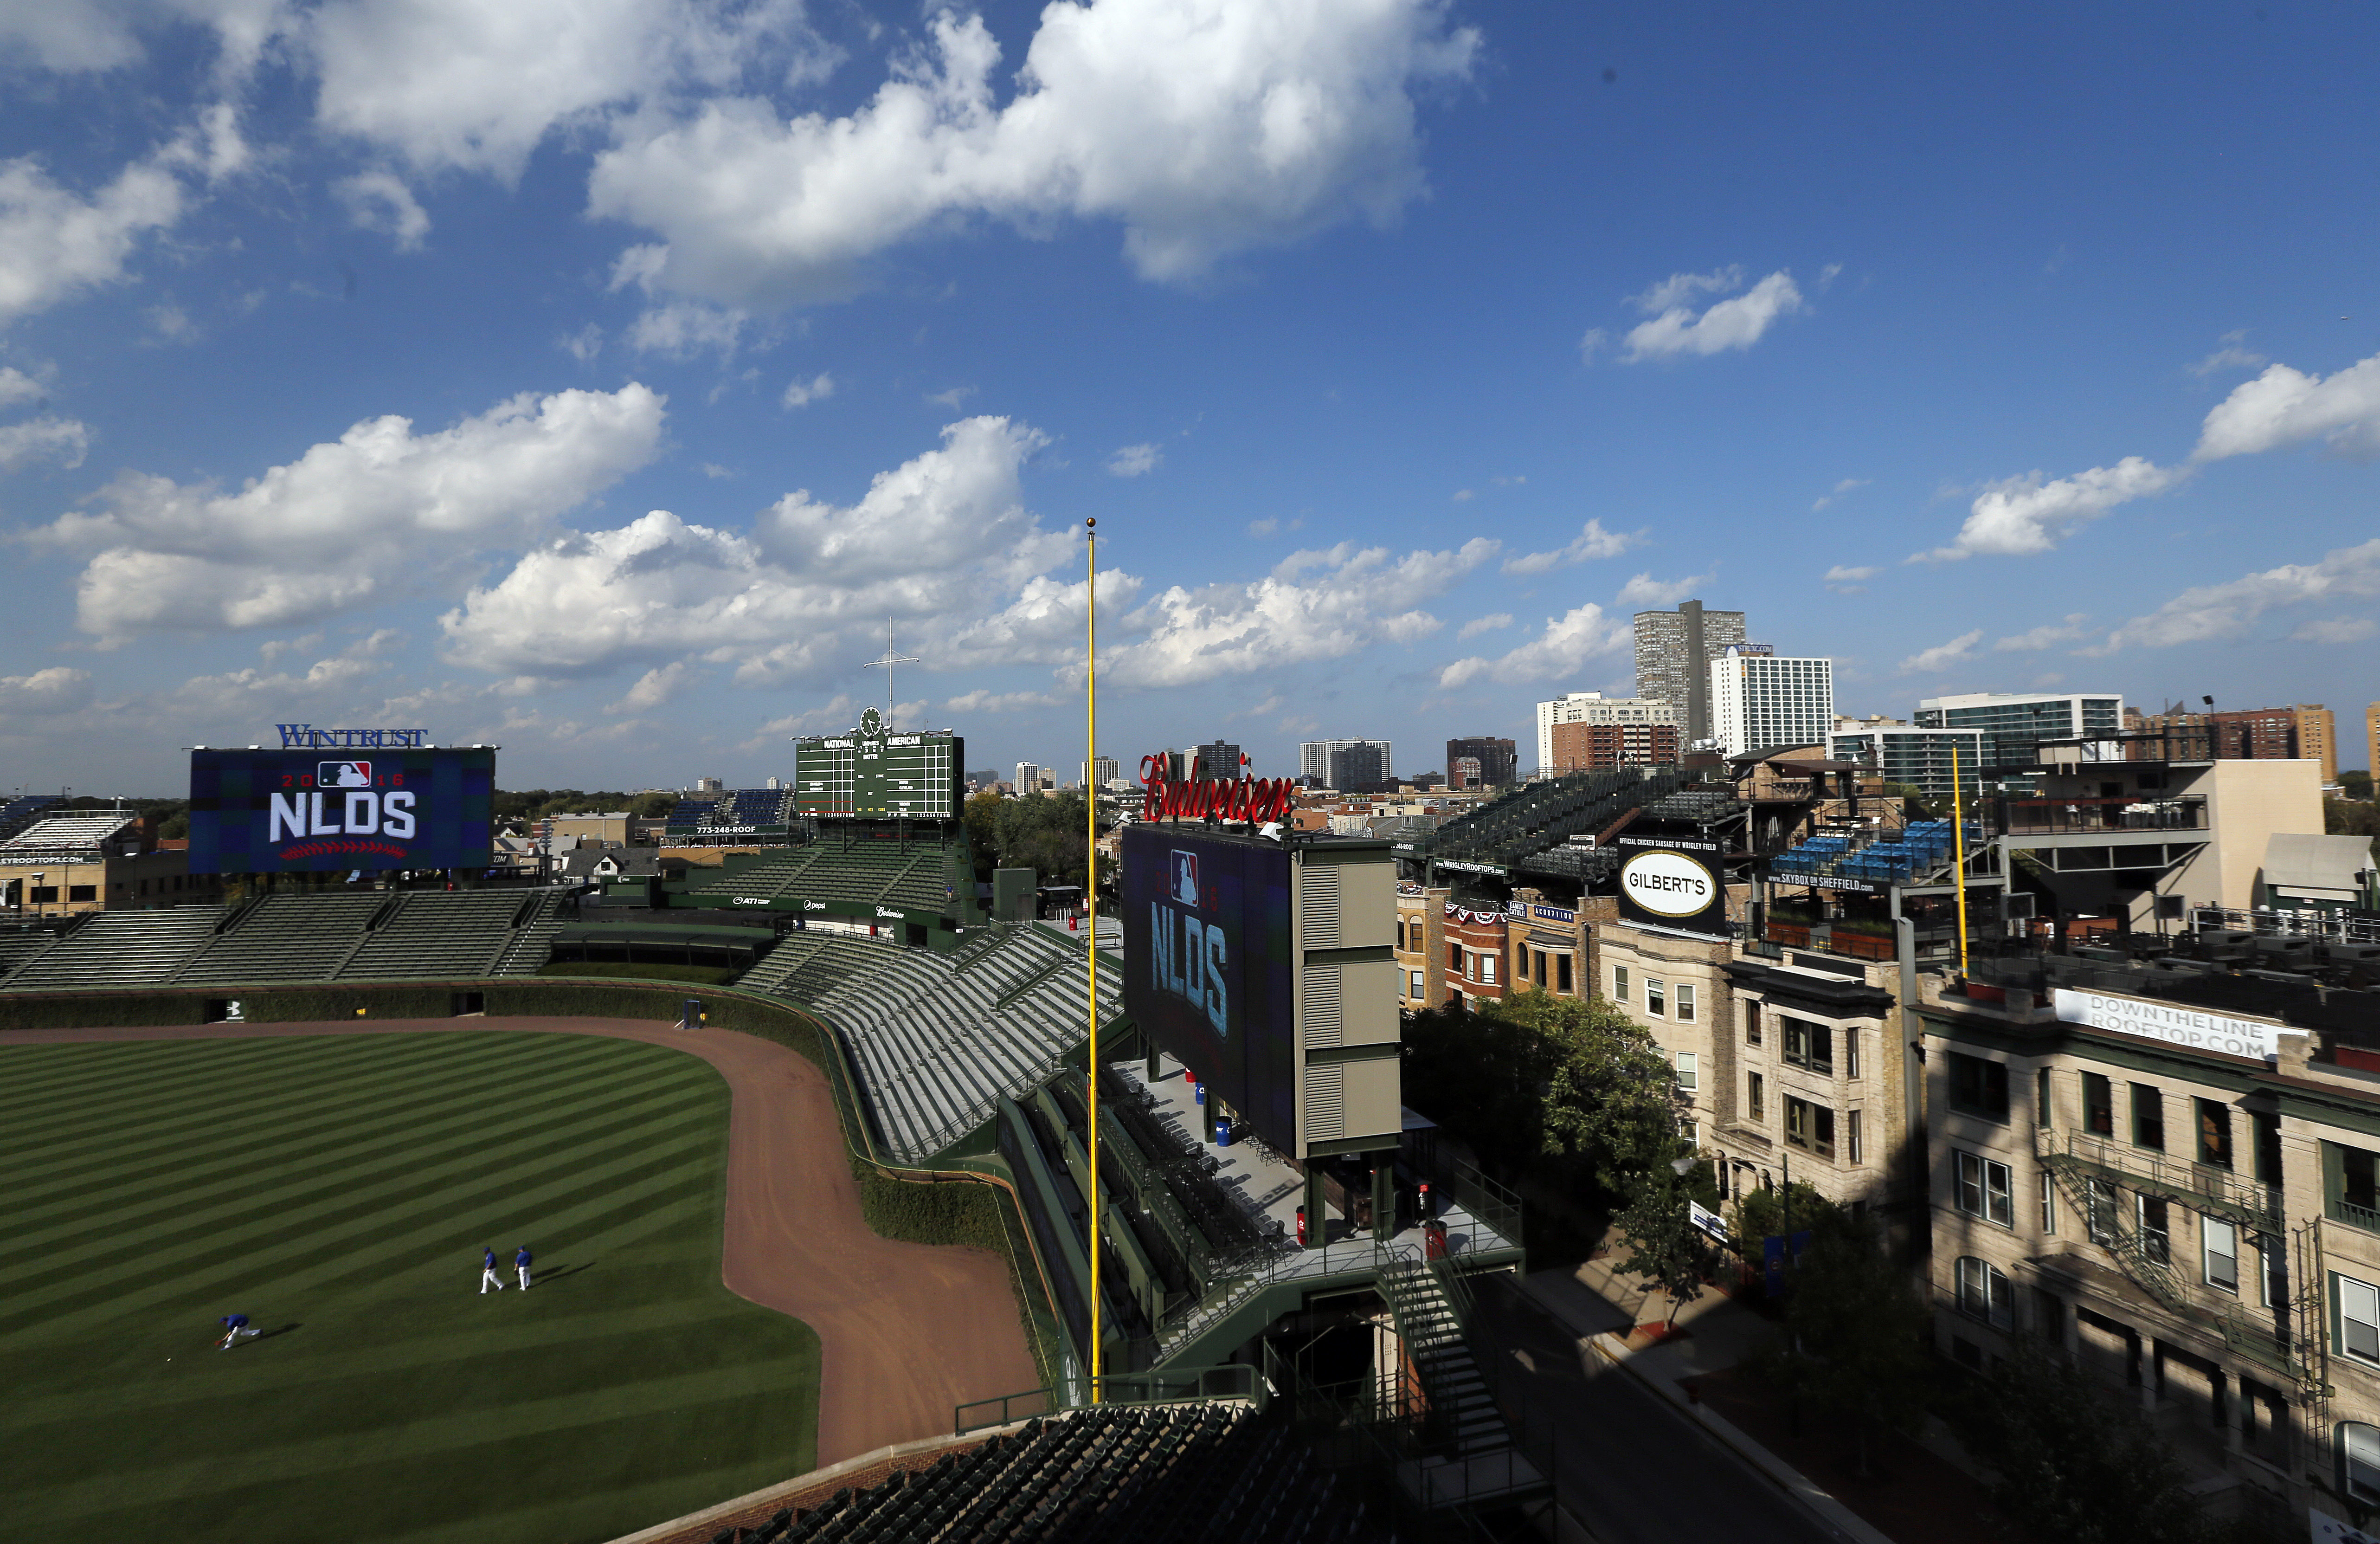 The Wrigleyville neighborhood stands beyond right field as Chicago Cubs players prepare for Game 1 of the National League Division Series against the San Francisco Giants, Wednesday, Oct. 5, 2016, in Chicago. Living near the workplace is one of the unique